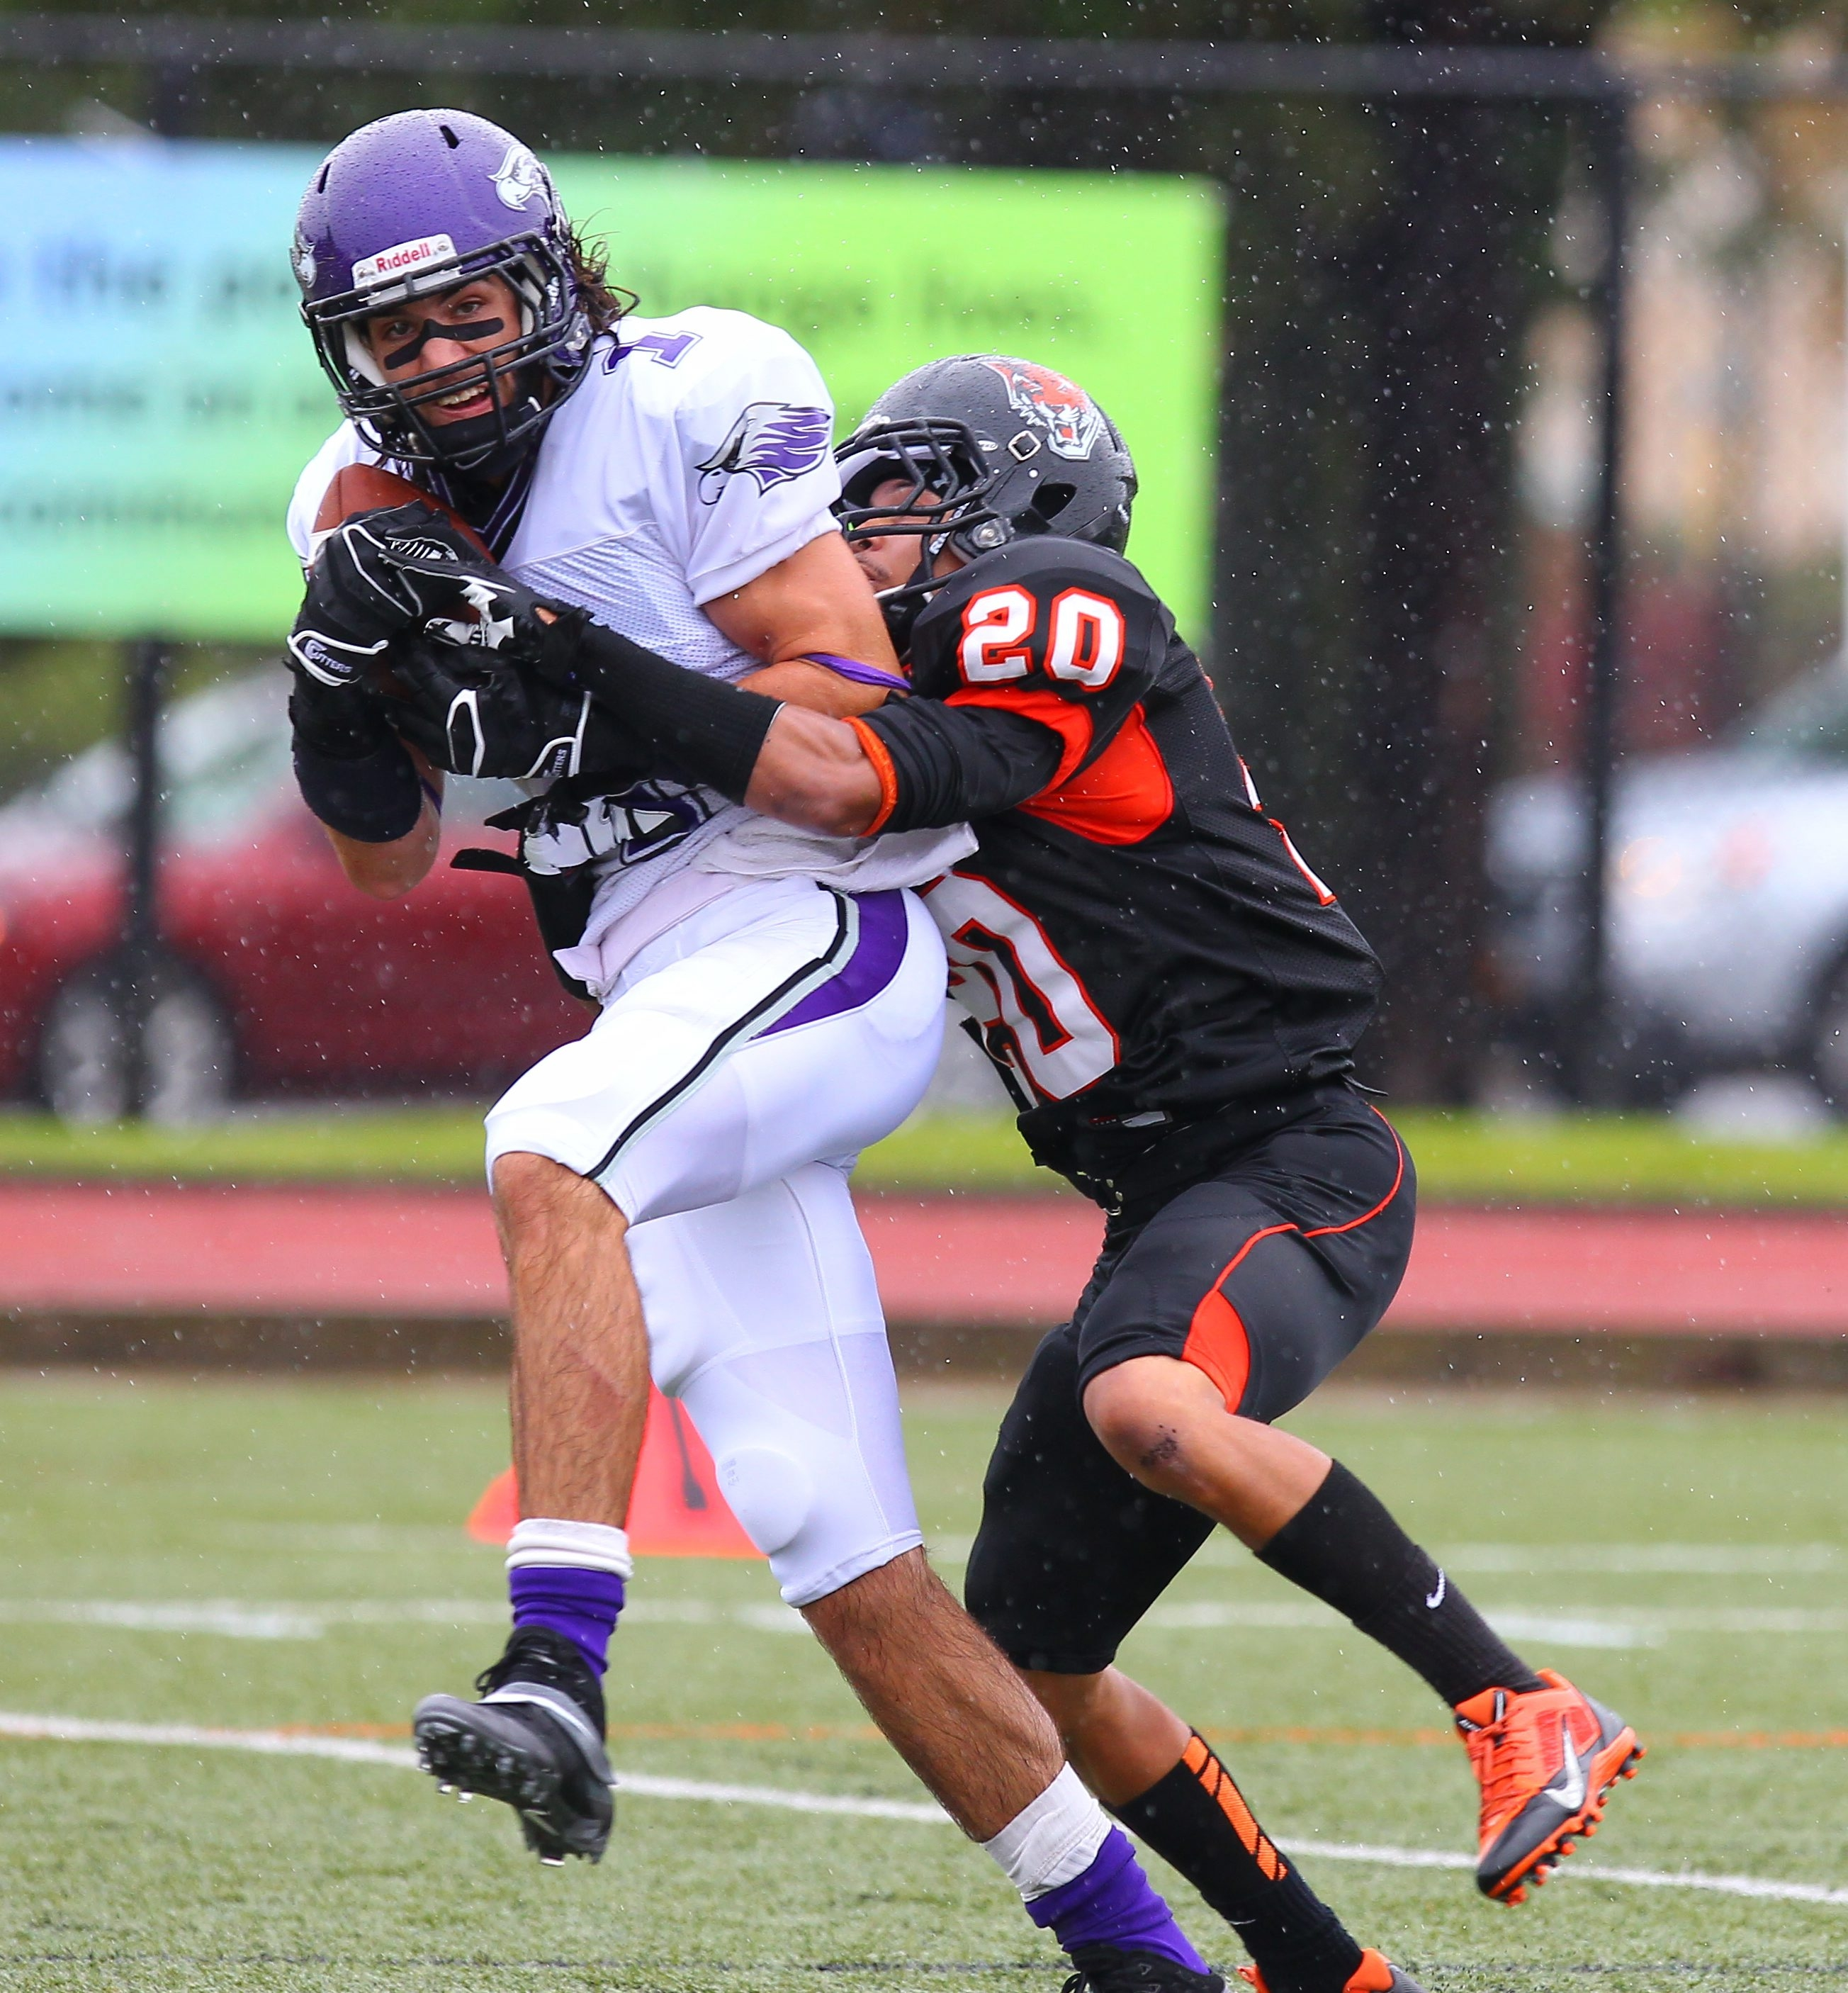 Buffalo State's Chris Hall (20) tackles  Wisconsin-Whitewater   receiver Jake Kumerow.